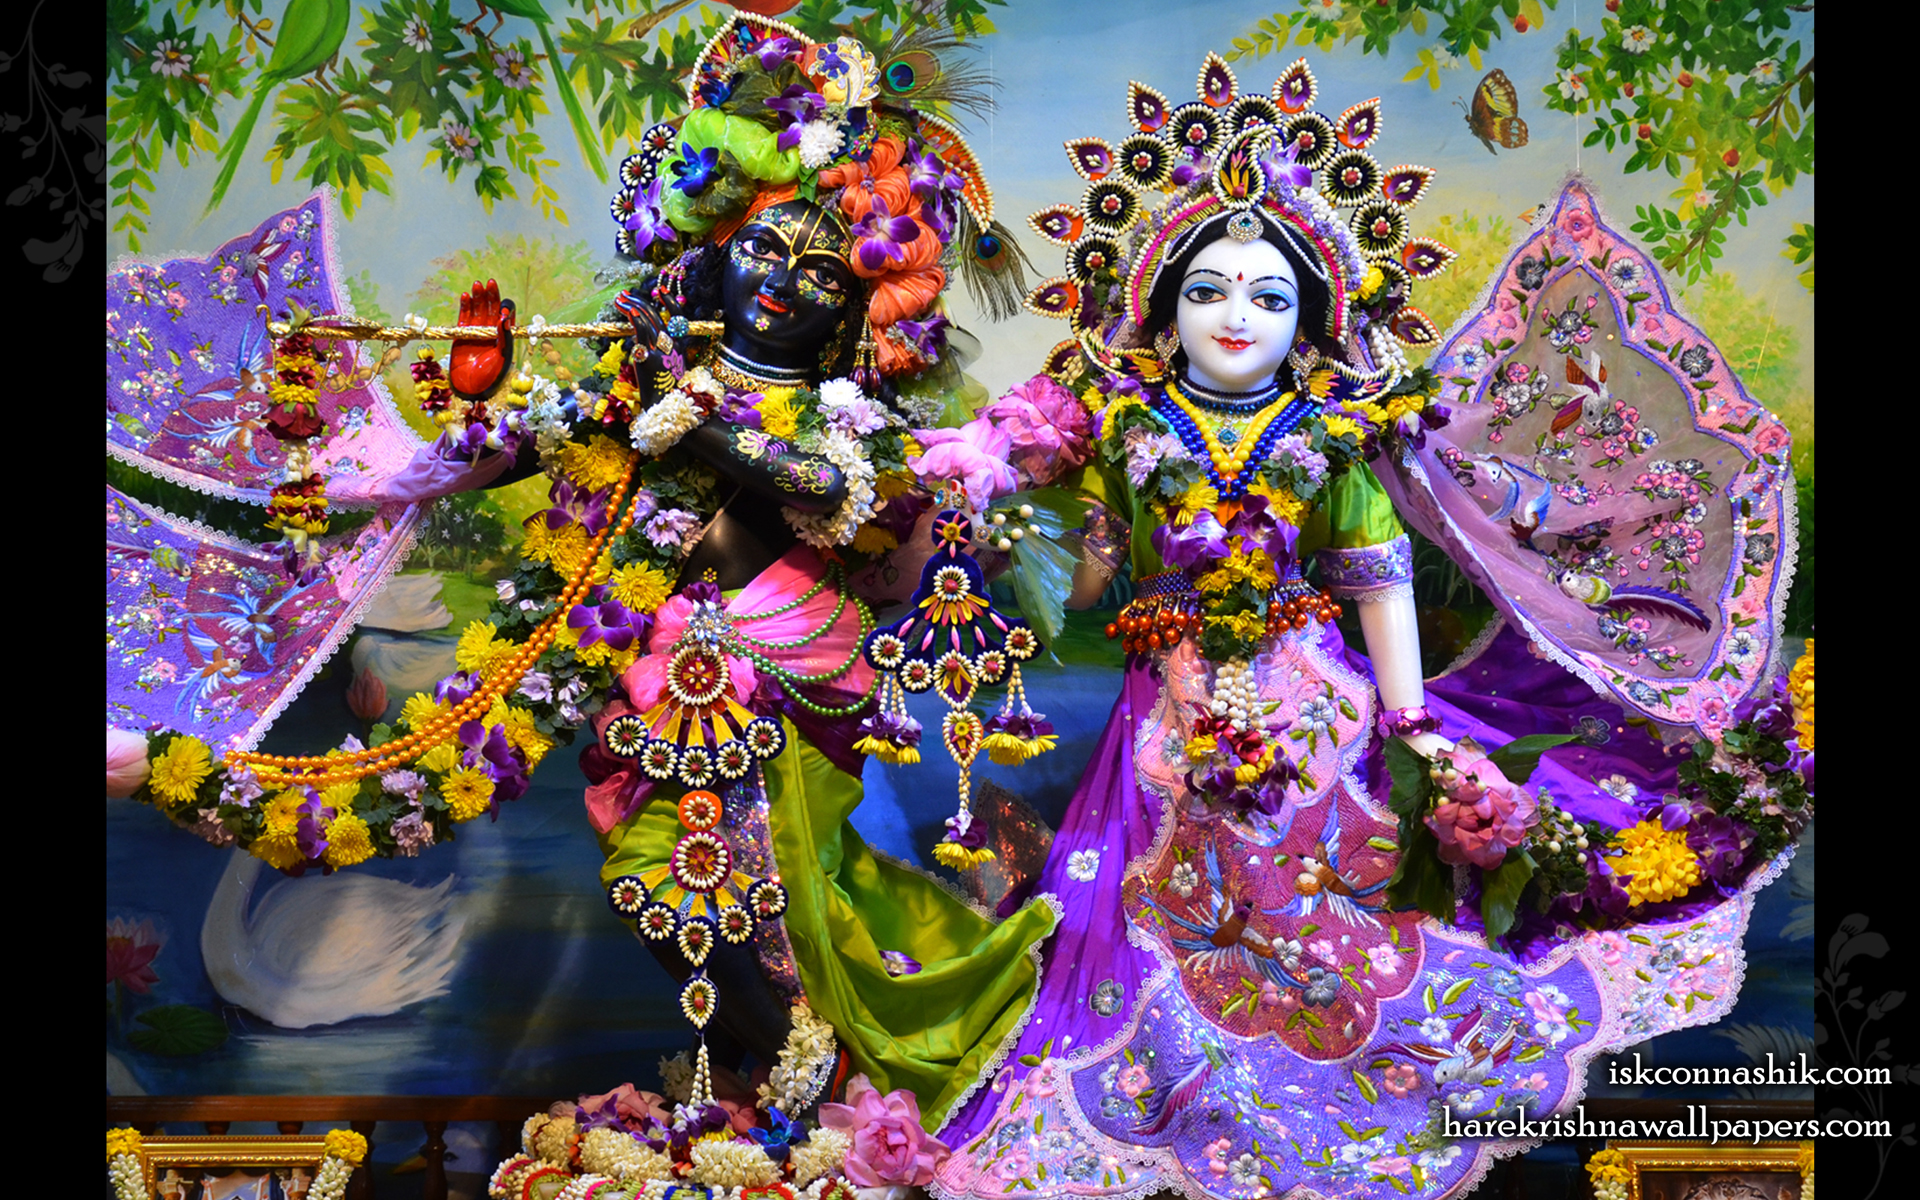 Sri Sri Radha Madan Gopal Wallpaper (021) Size 1920x1200 Download